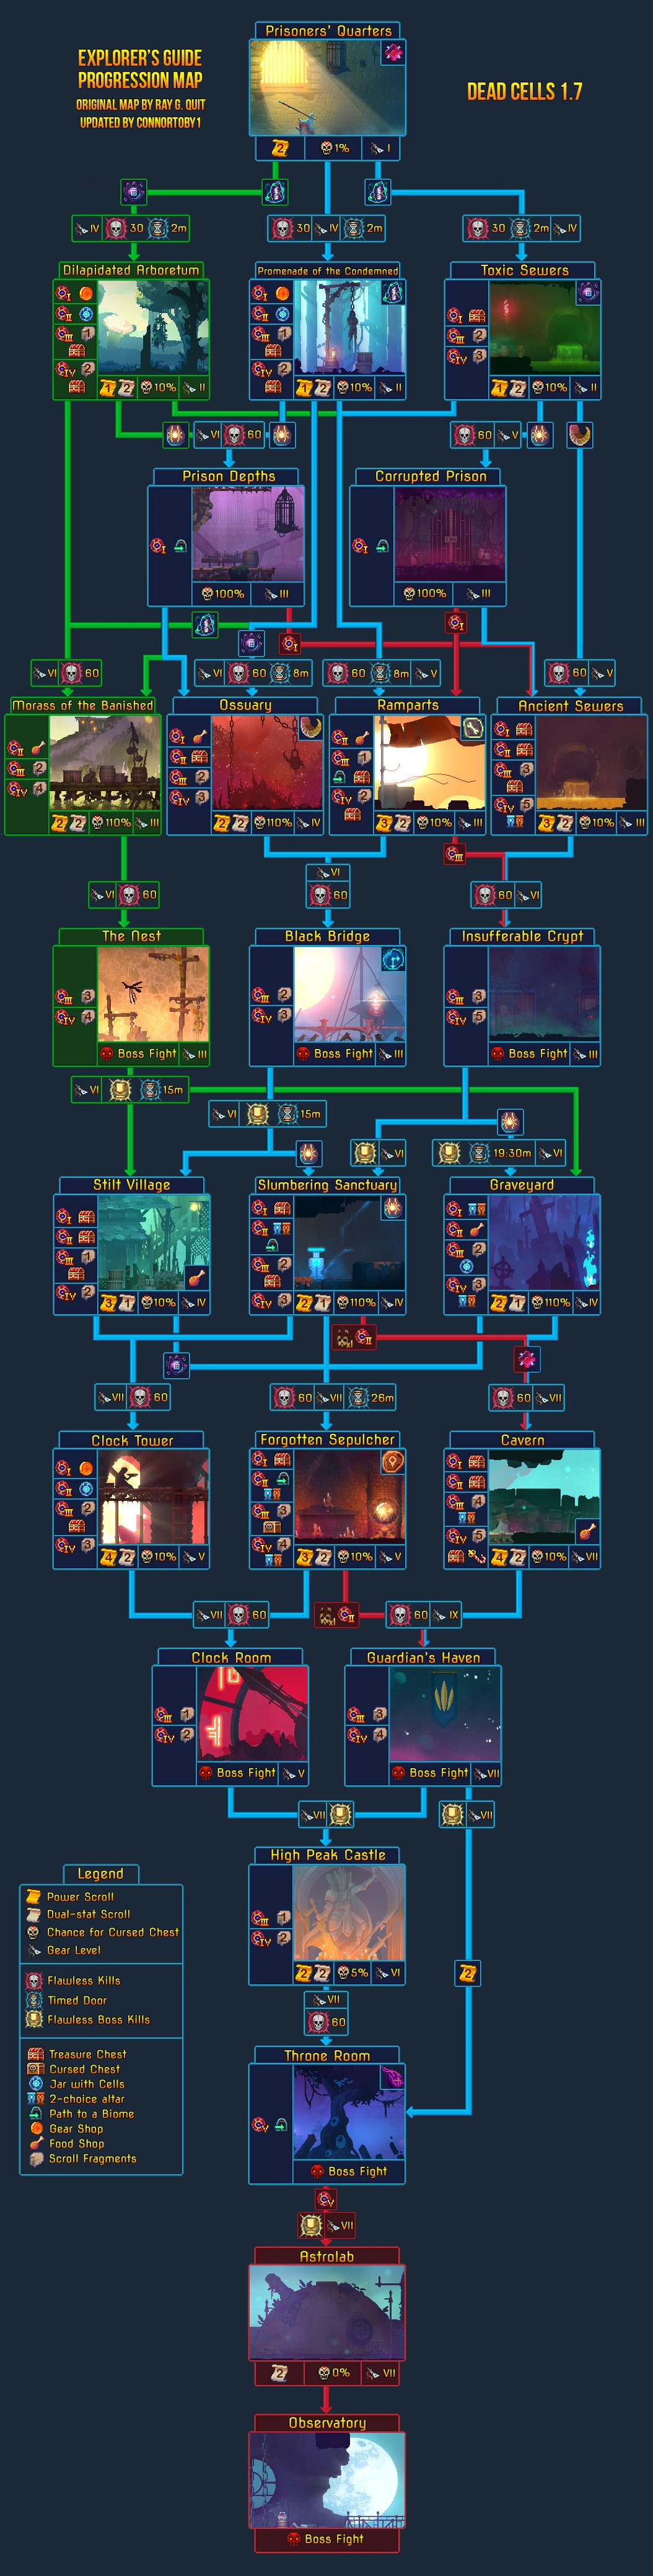 The Dead Cells map was revised for The Bad Seed